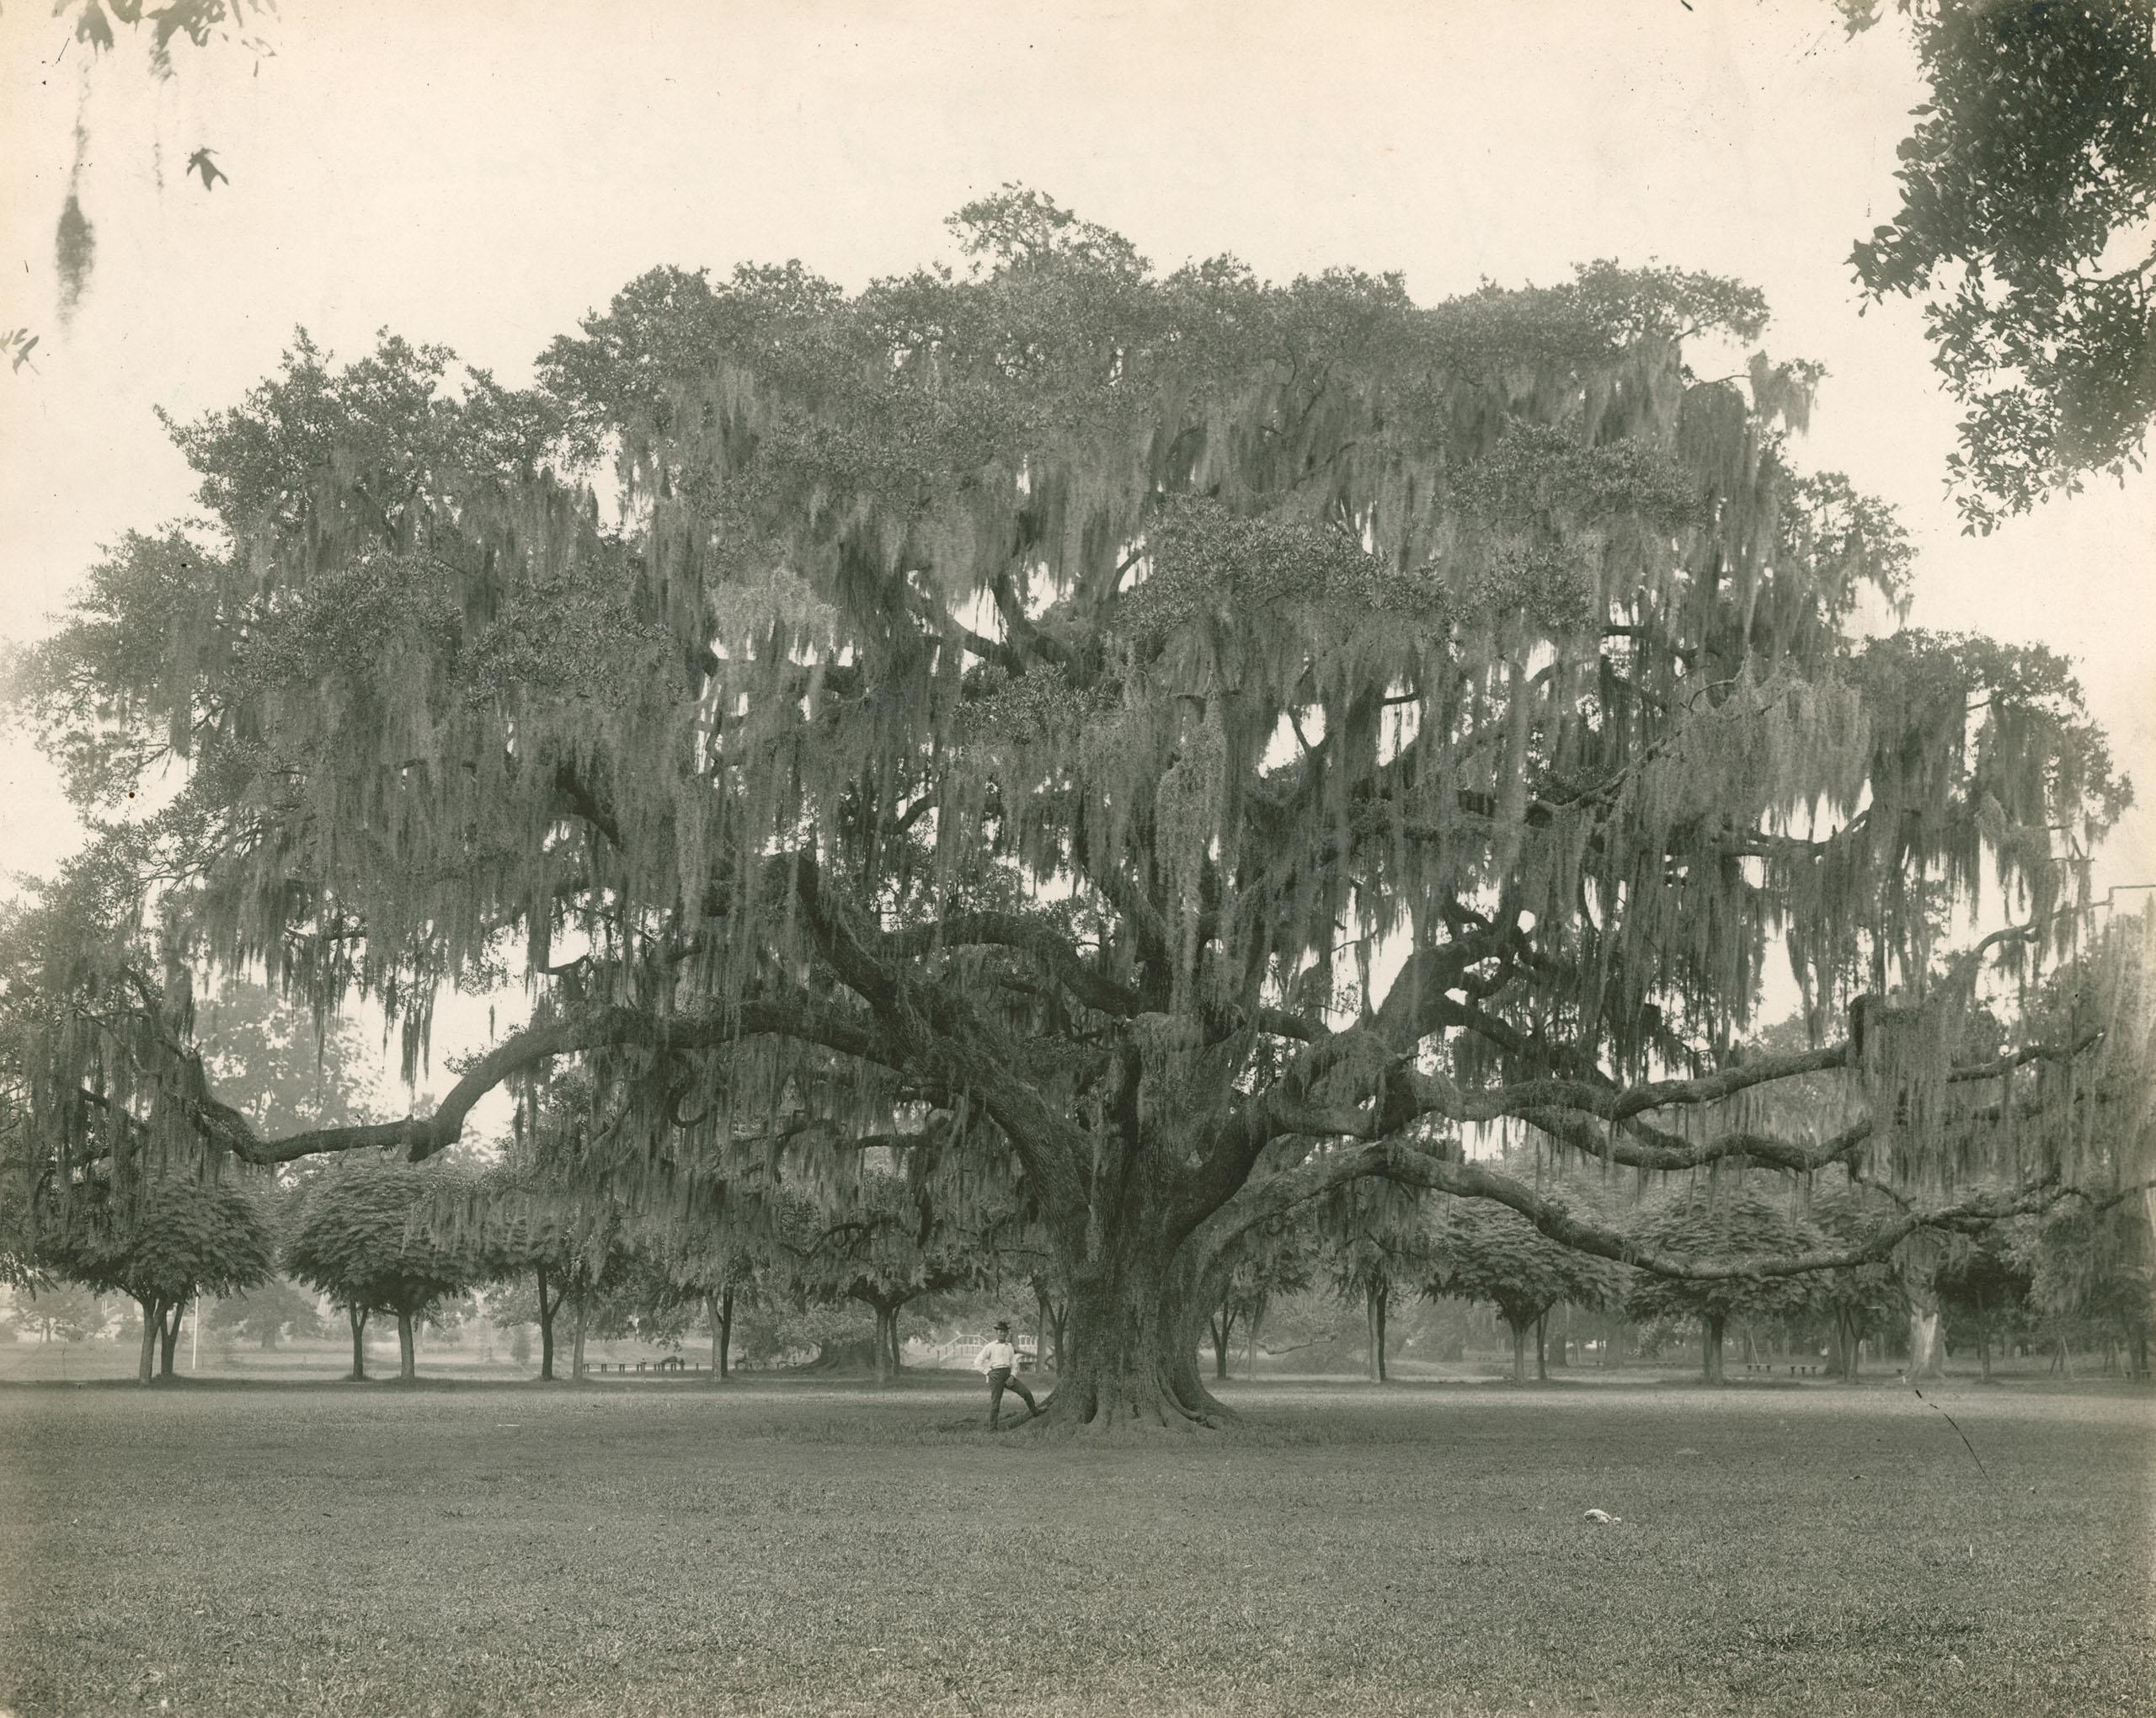 According to Coleen Landry, the chairwoman of the Live Oak Society, each tree has its own unique personality, including being either masculine or feminine. Their fierce individualism and long life-spans have endeared them to Southern culture, where they still occupy a special place. For the record, Landry confirms that Rory's Oak was masculine. Photo by: Alexander/National Geographic Creative